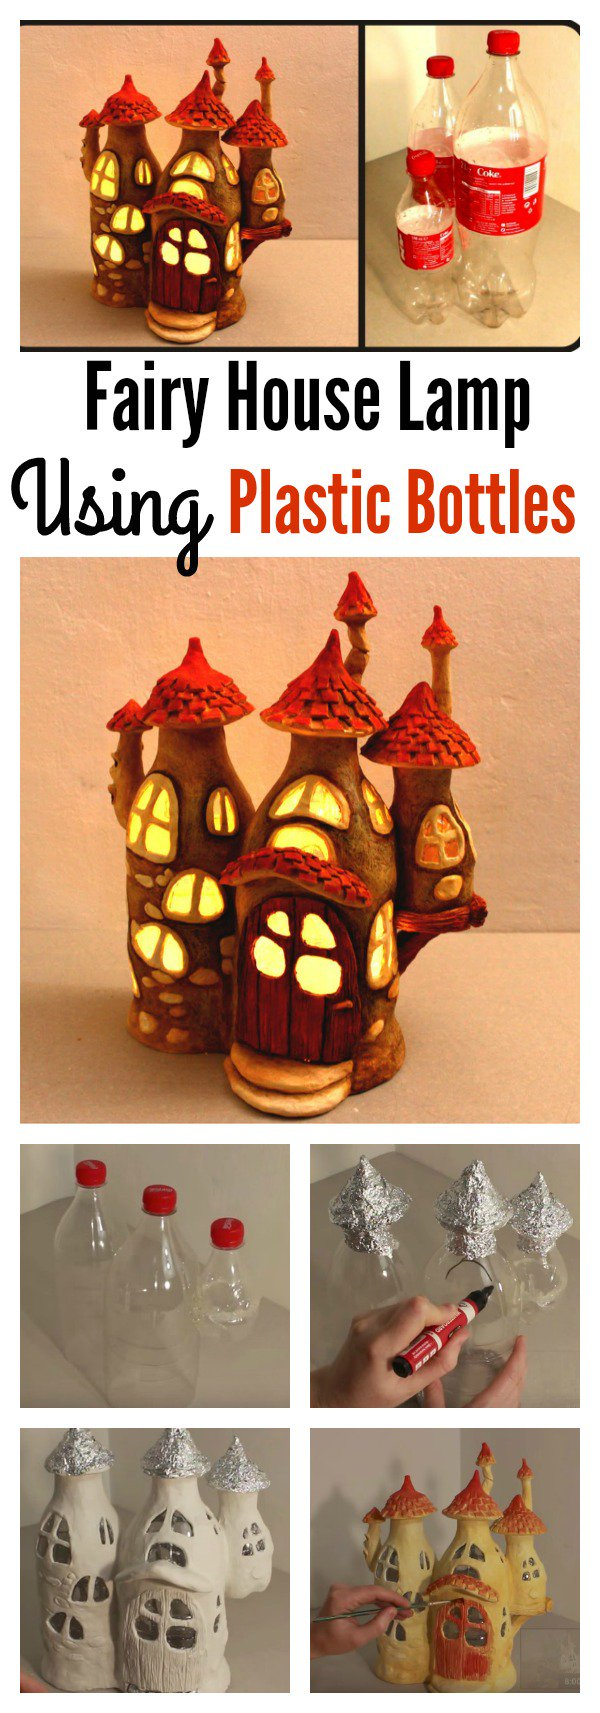 DIY Fairy House Lamp Using Plastic Bottles.